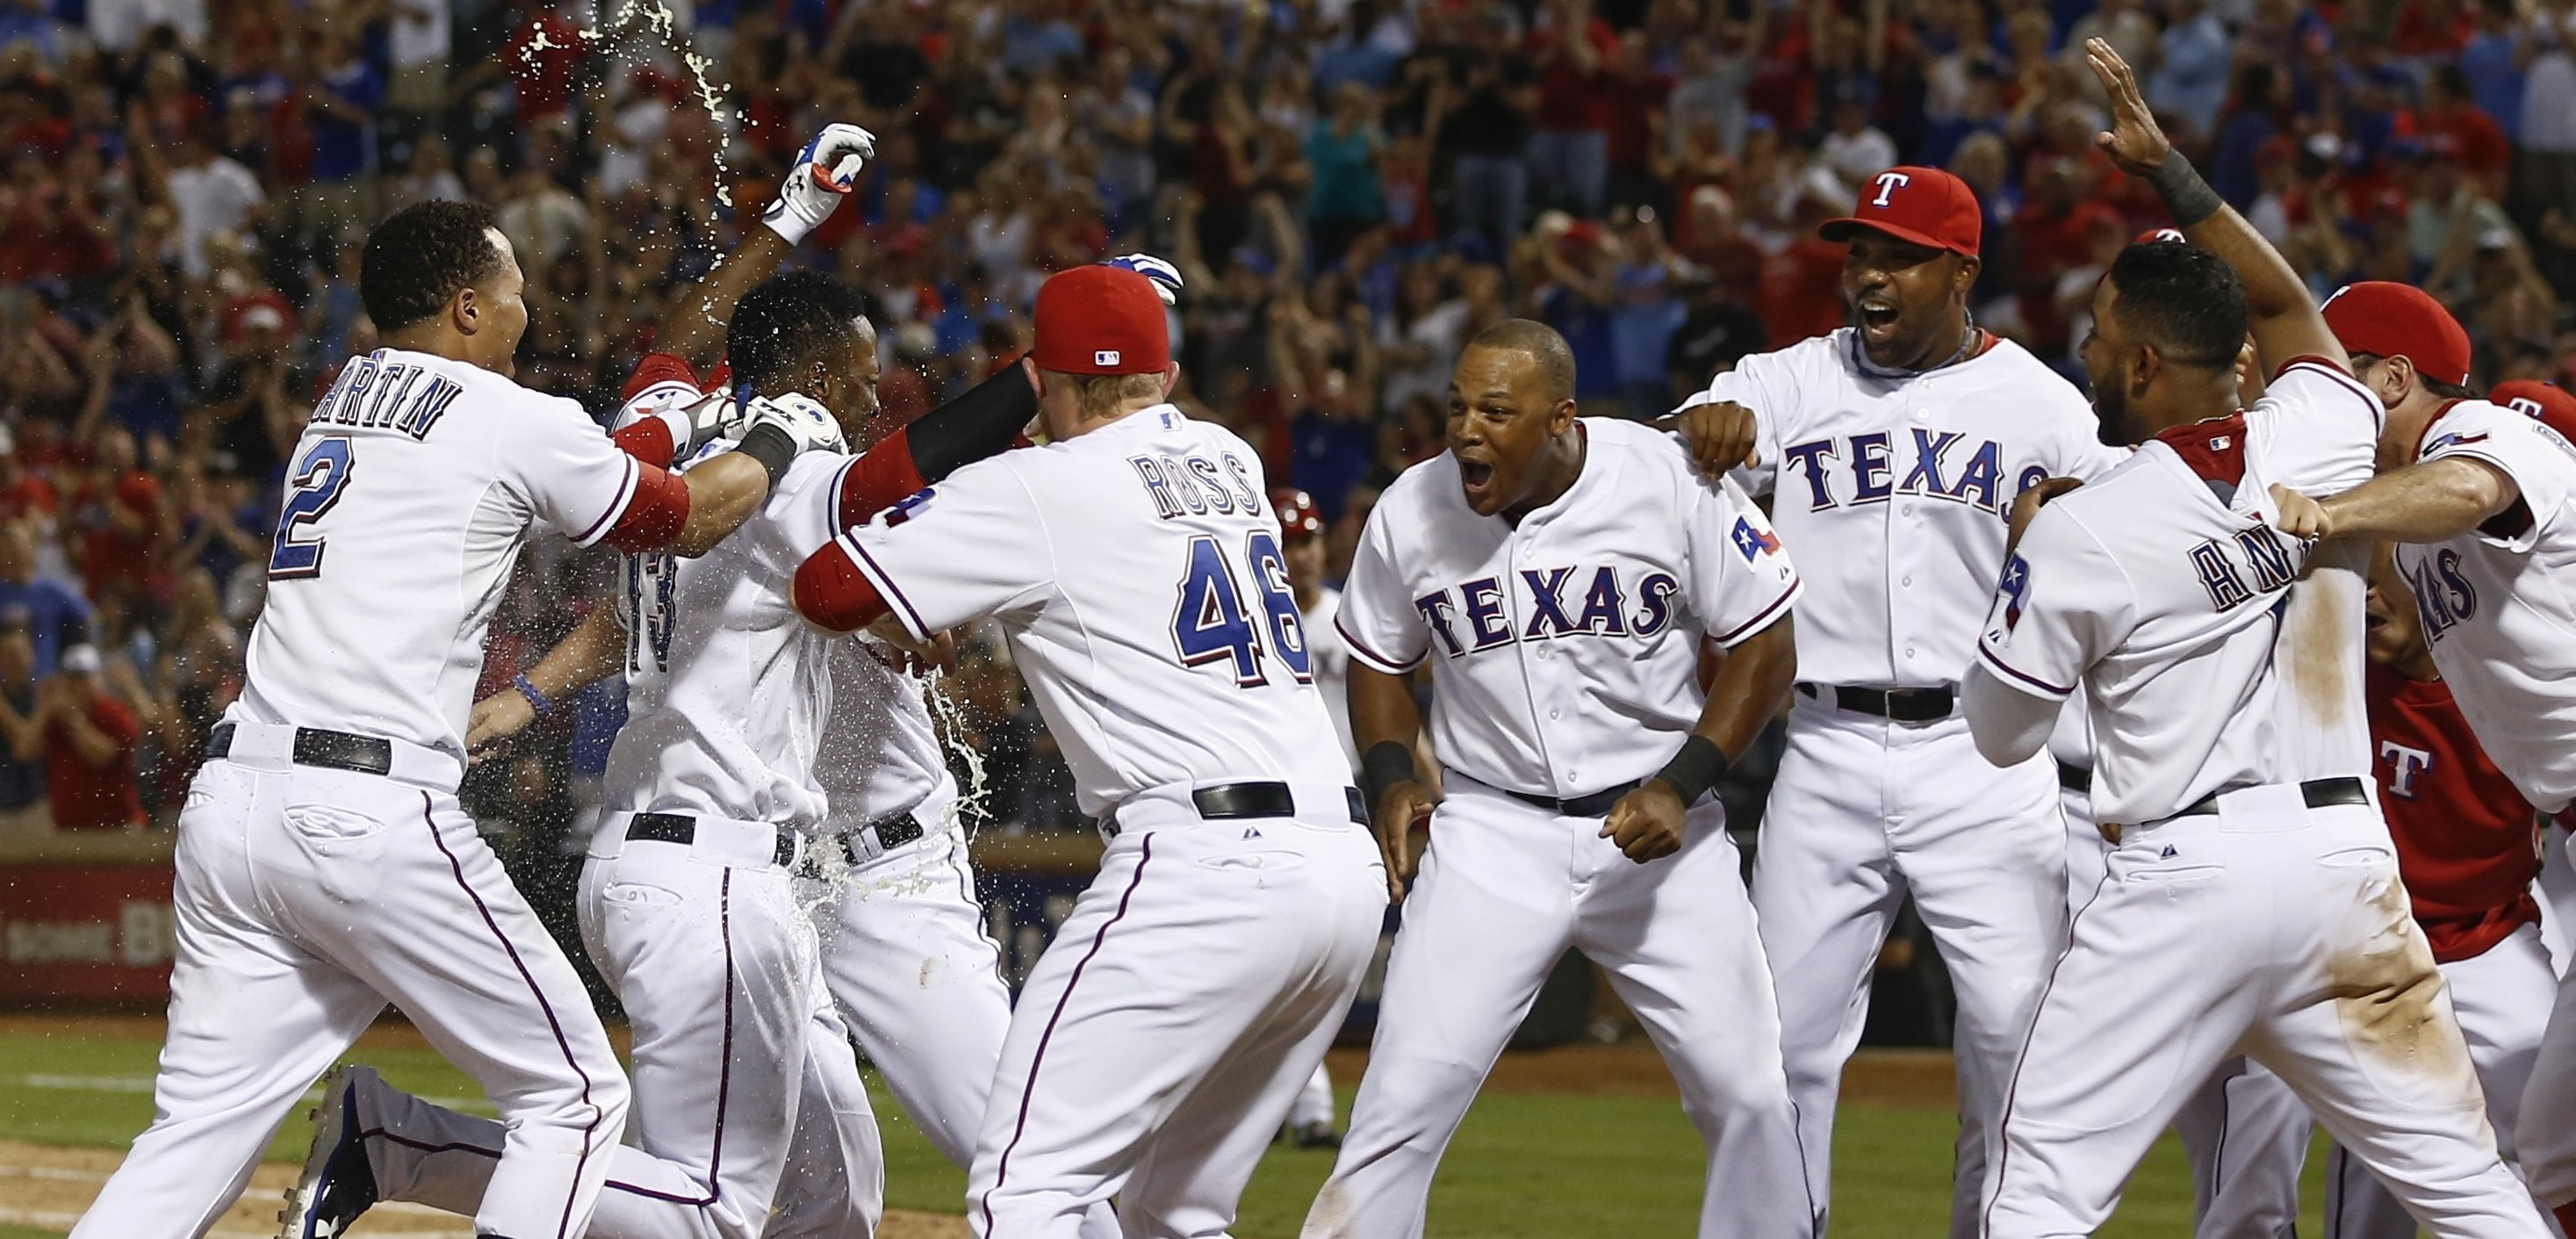 wallpaper.wiki-Texas-Rangers-Images-HD-Free-PIC-